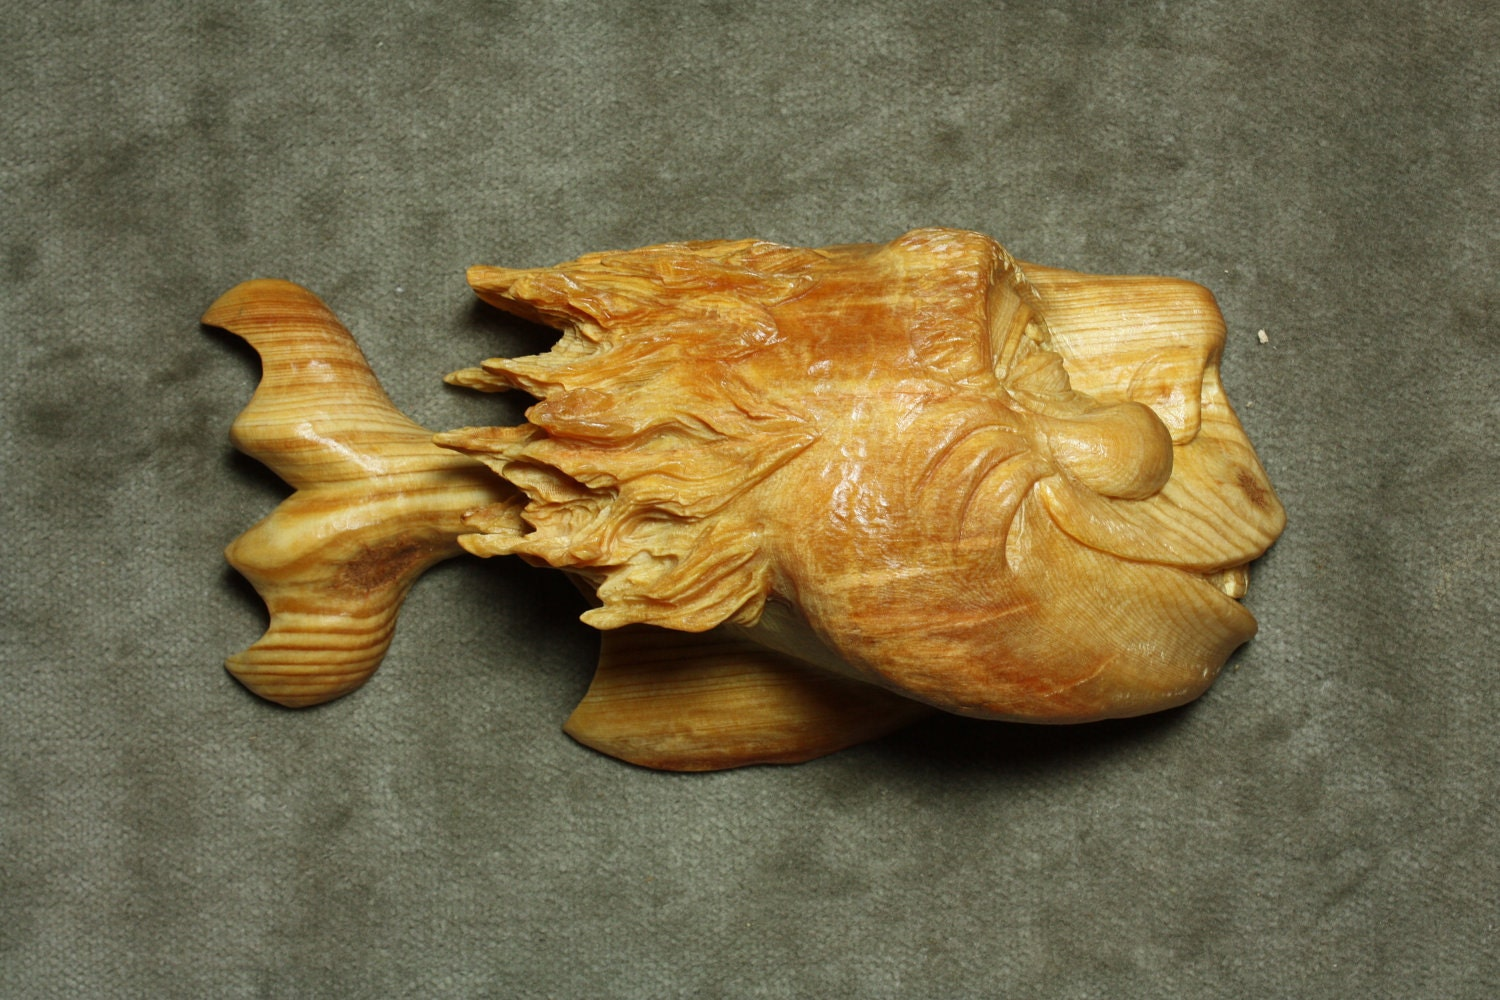 Funny wood carving of a fantasy fish carved by gary wiz burns for Fish wood carving